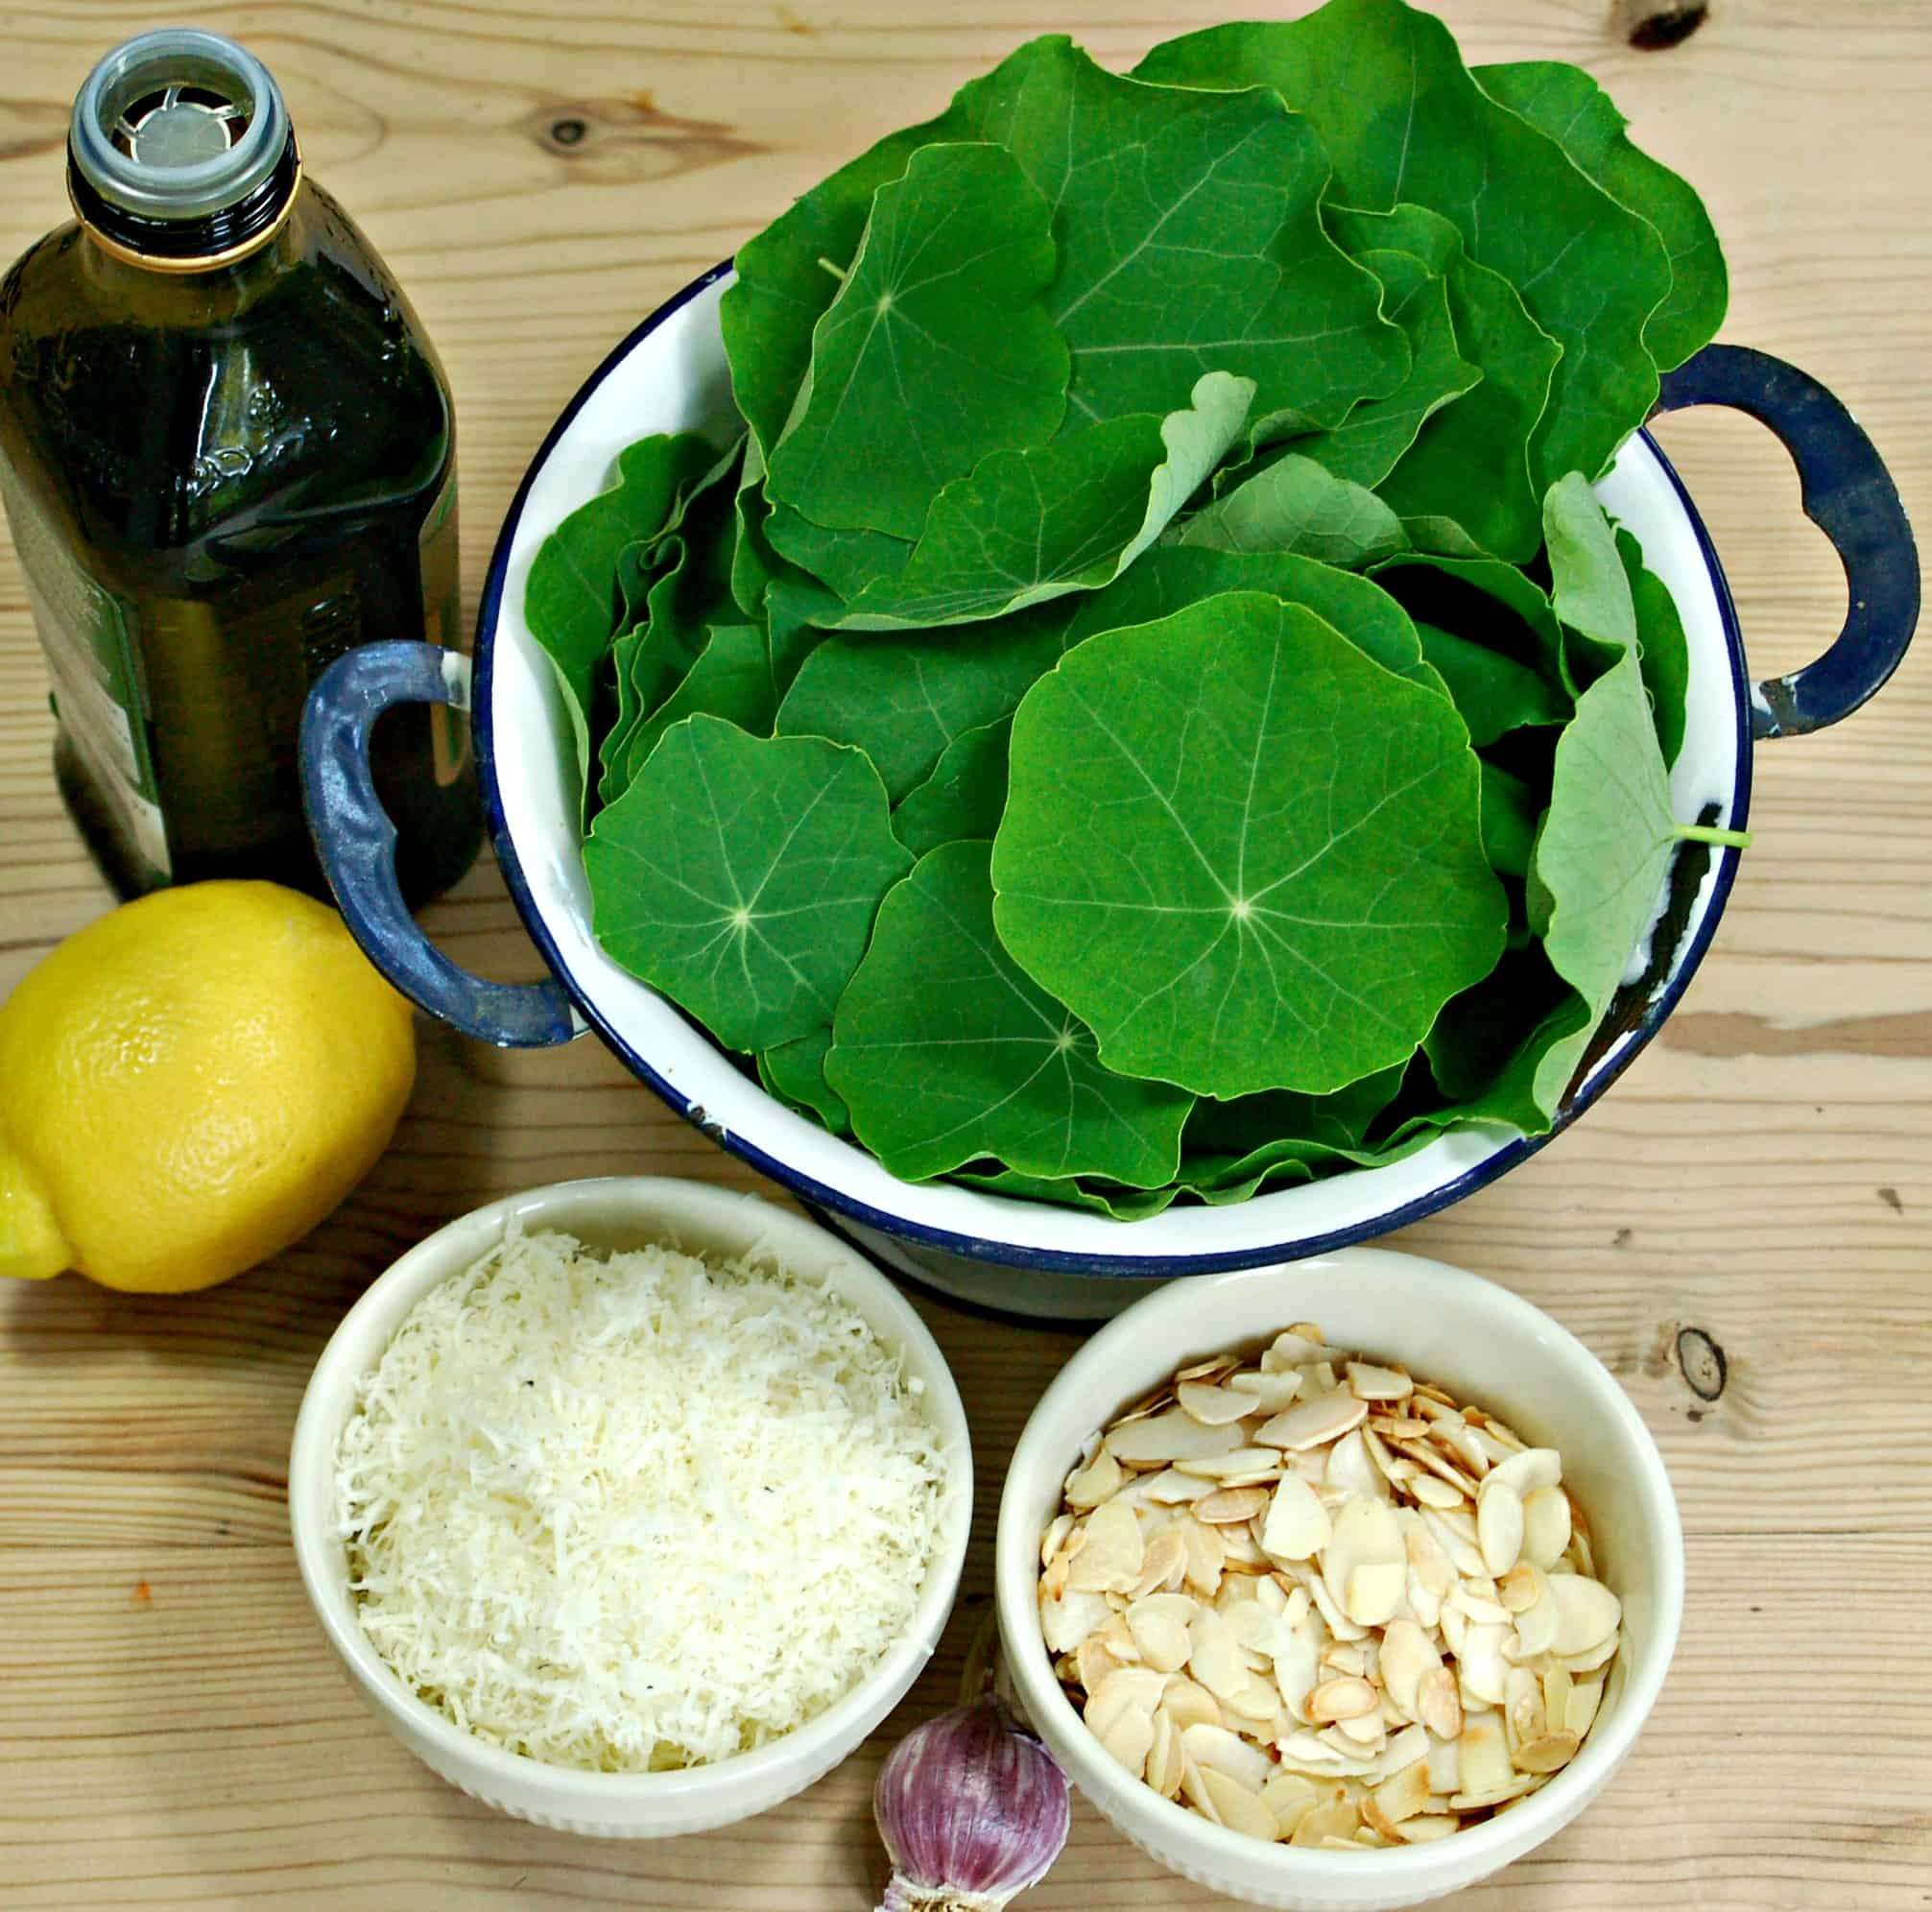 The wonderful peppery flavour of Nasturtium leaves works really well in this simple and quick pesto recipe, which you could easily adapt for other leaves.